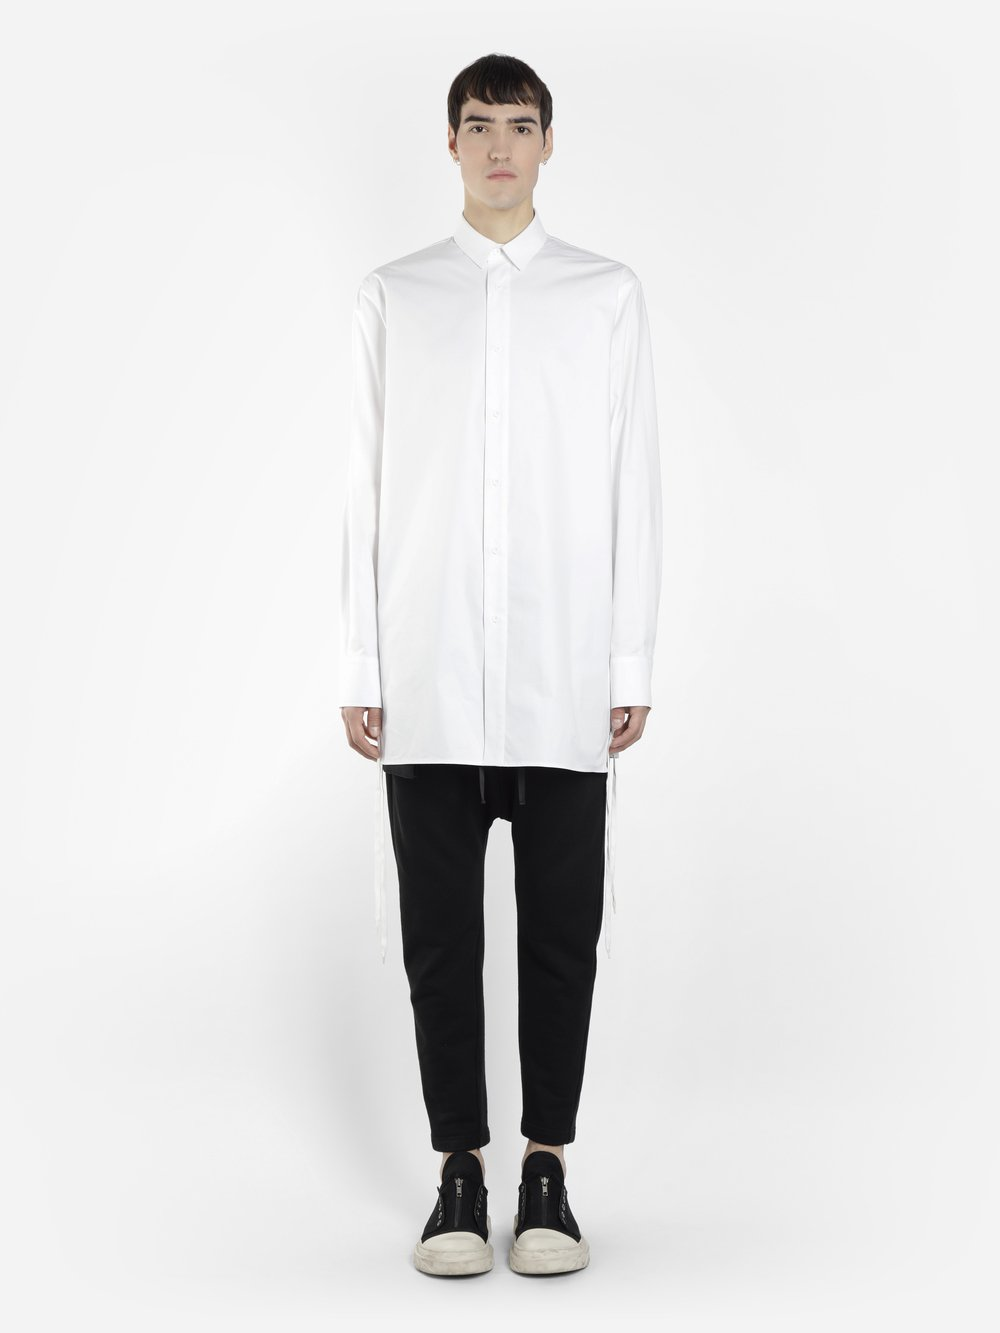 D BY D MEN'S WHITE LONG SHIRT WITH LATERAL STRINGS